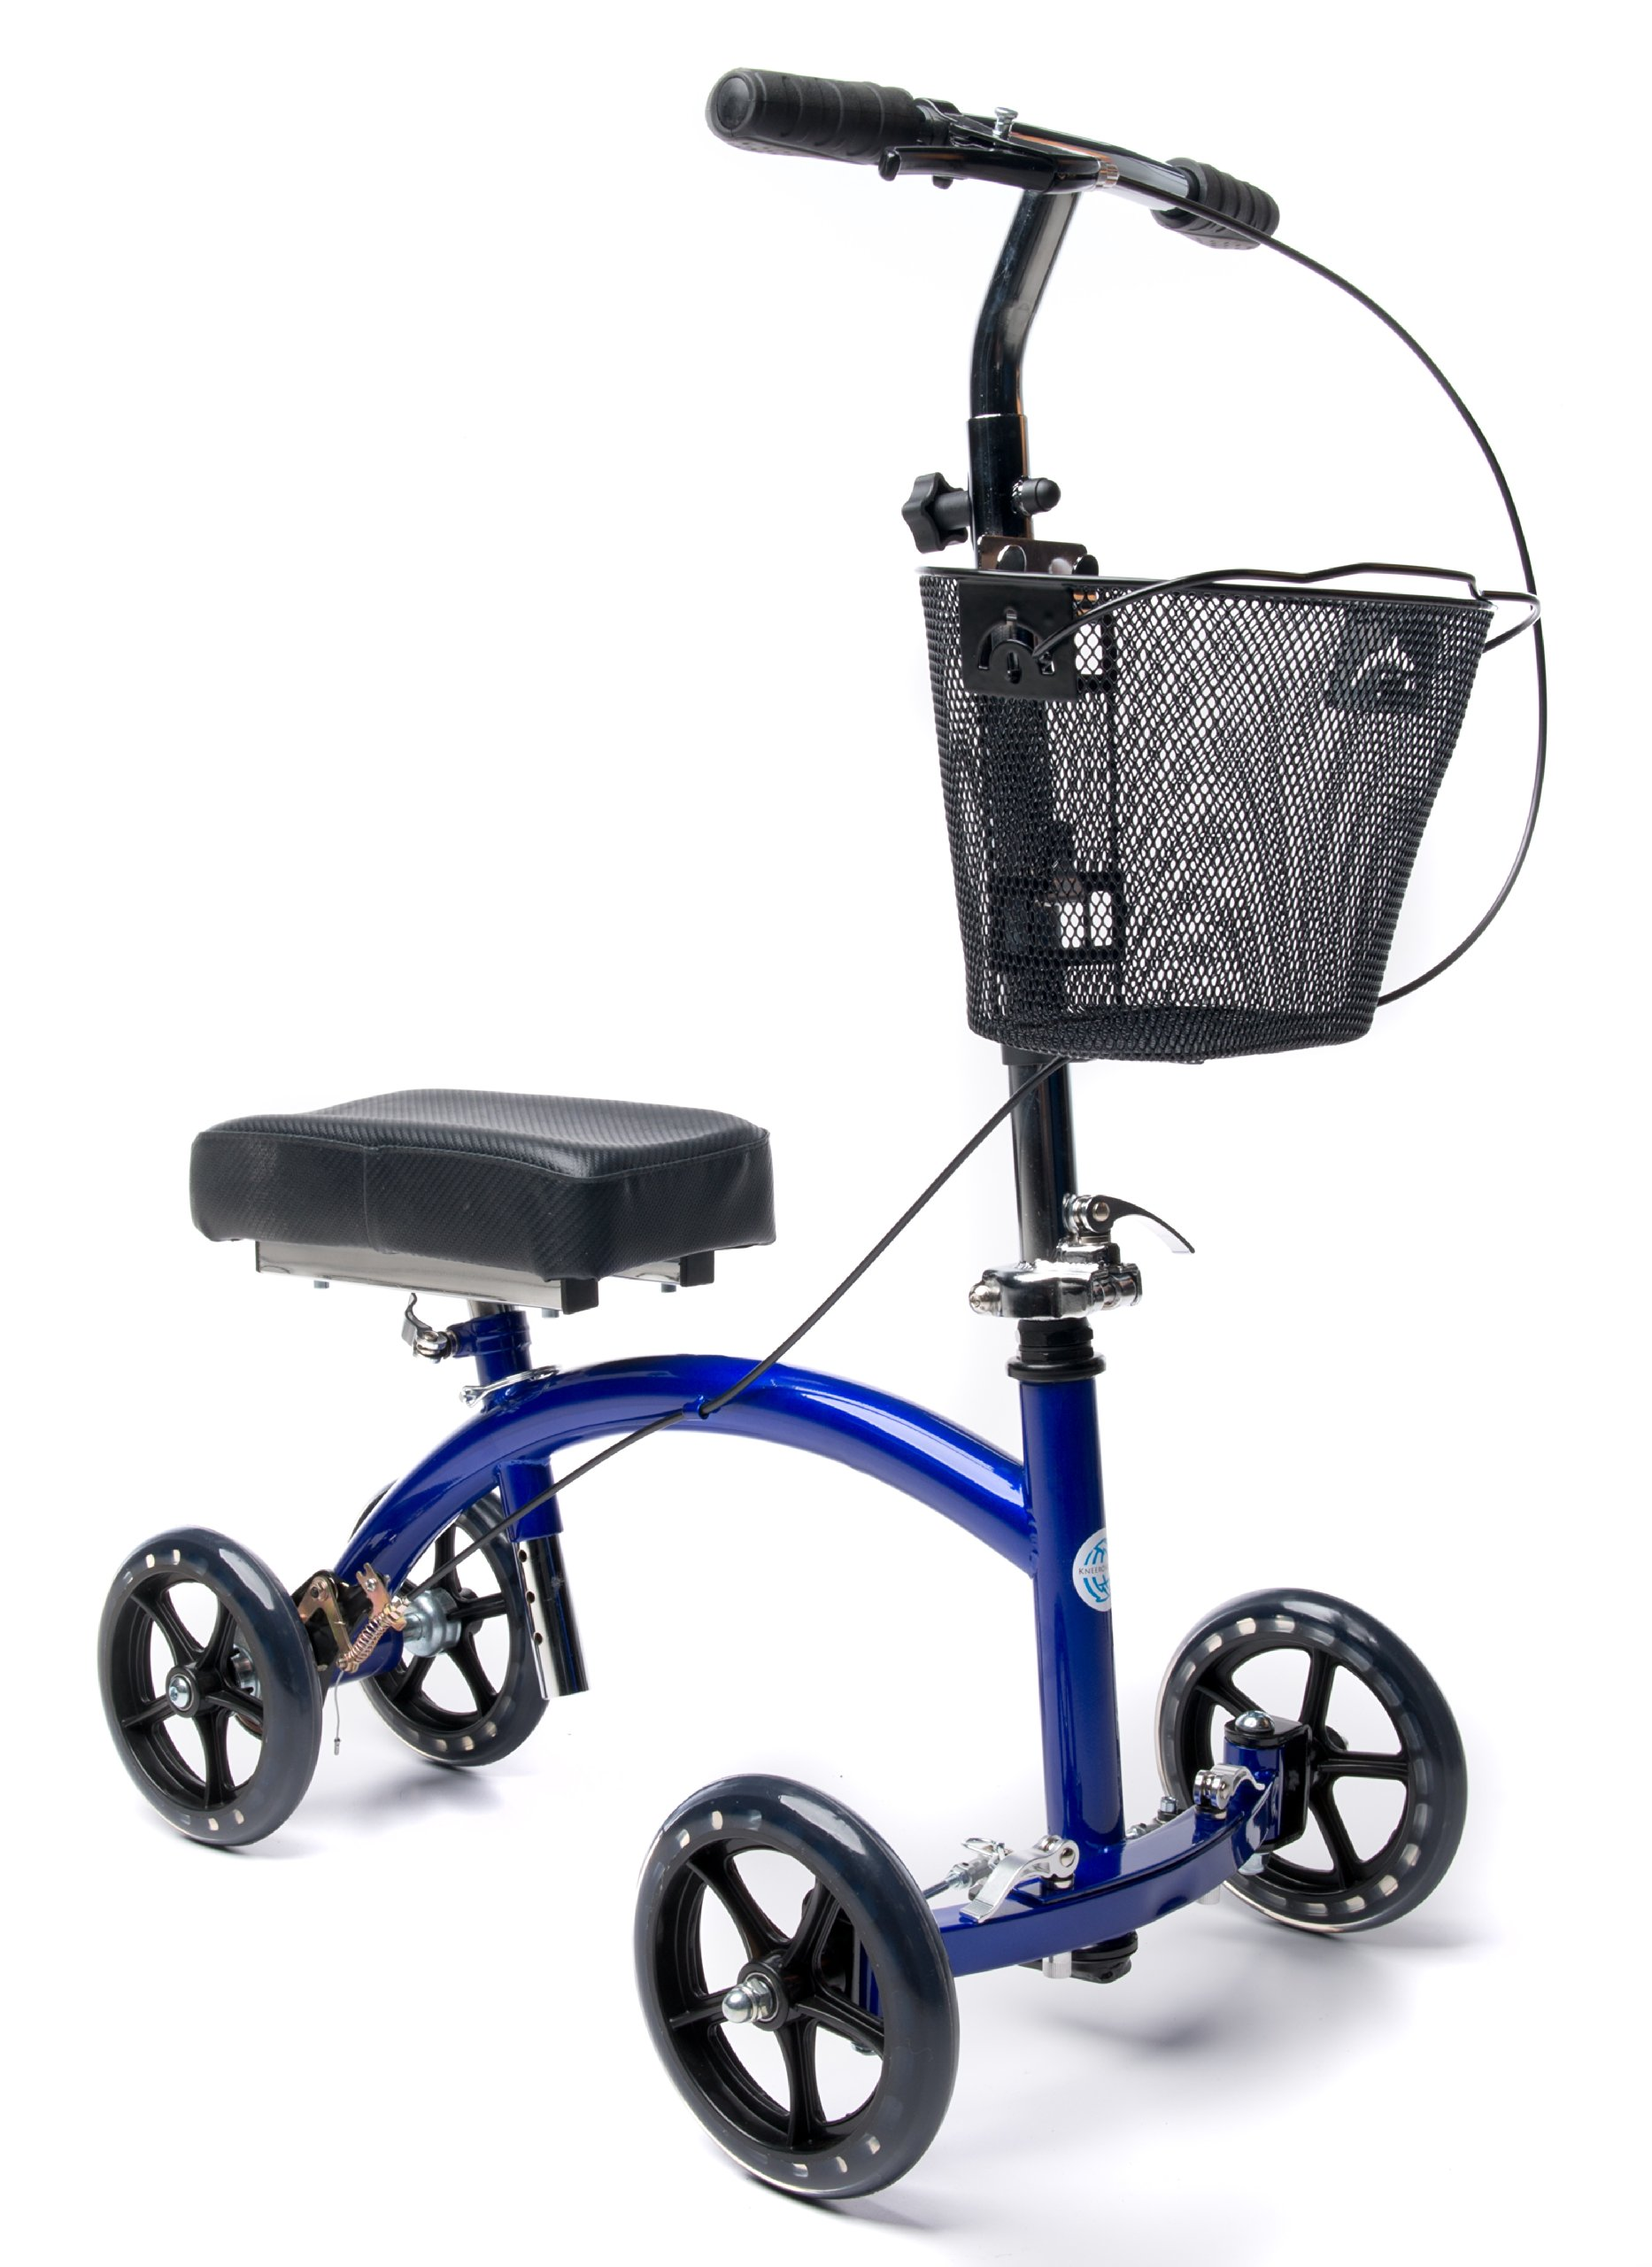 KneeRover Deluxe Steerable Knee Cycle Knee Walker  Scooter Crutch Alternative in Blue by KneeRover